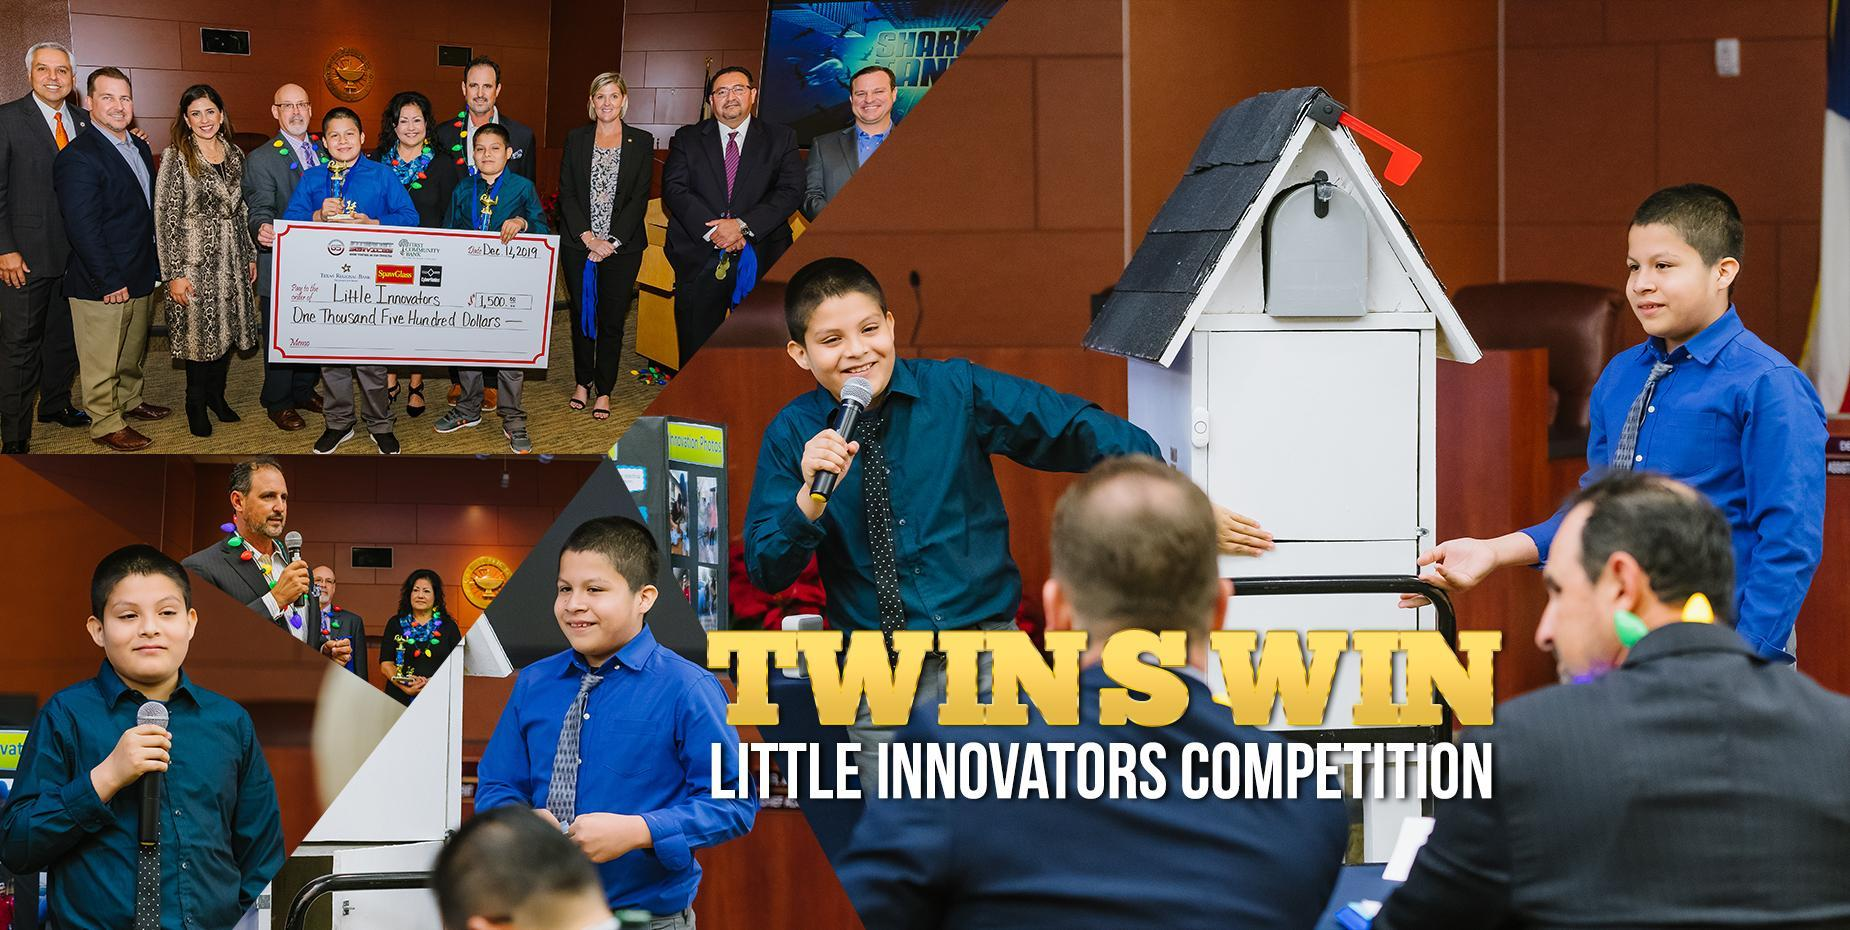 TWINS WIN LITTLE INNOVATORS COMPETITION